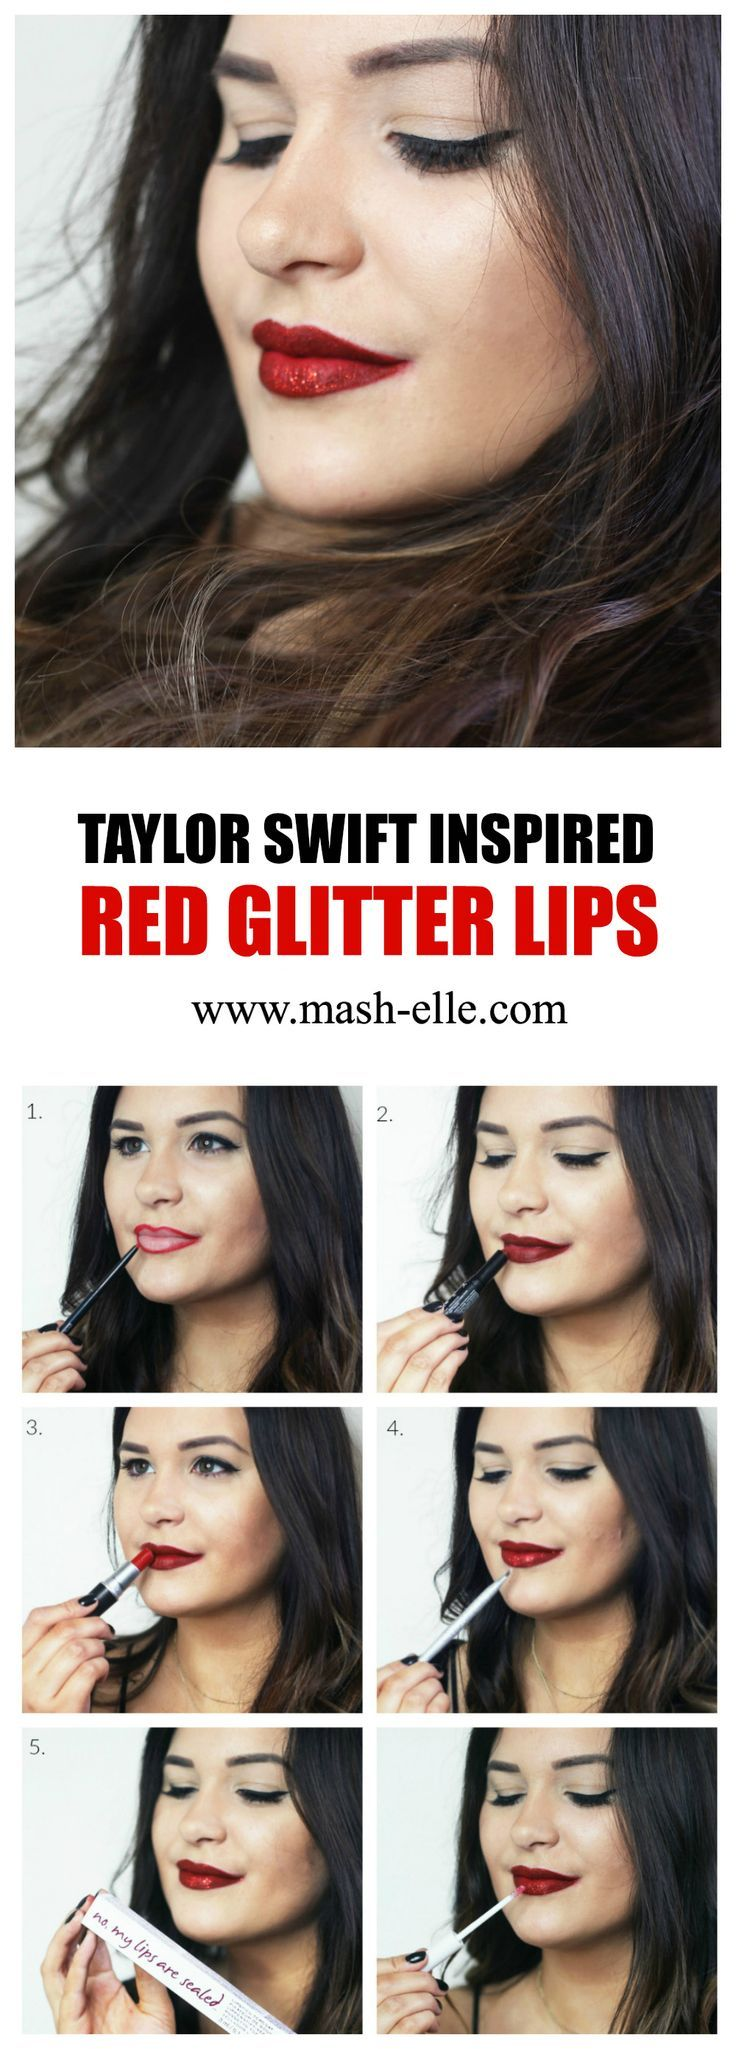 GLITTER?! Yes please. | Beauty blogger Mash Elle shares an easy red glitter lipstick makeup tutorial with @knowcosmetics! #sheKNOWSbeauty #itworksbeautifully #ad